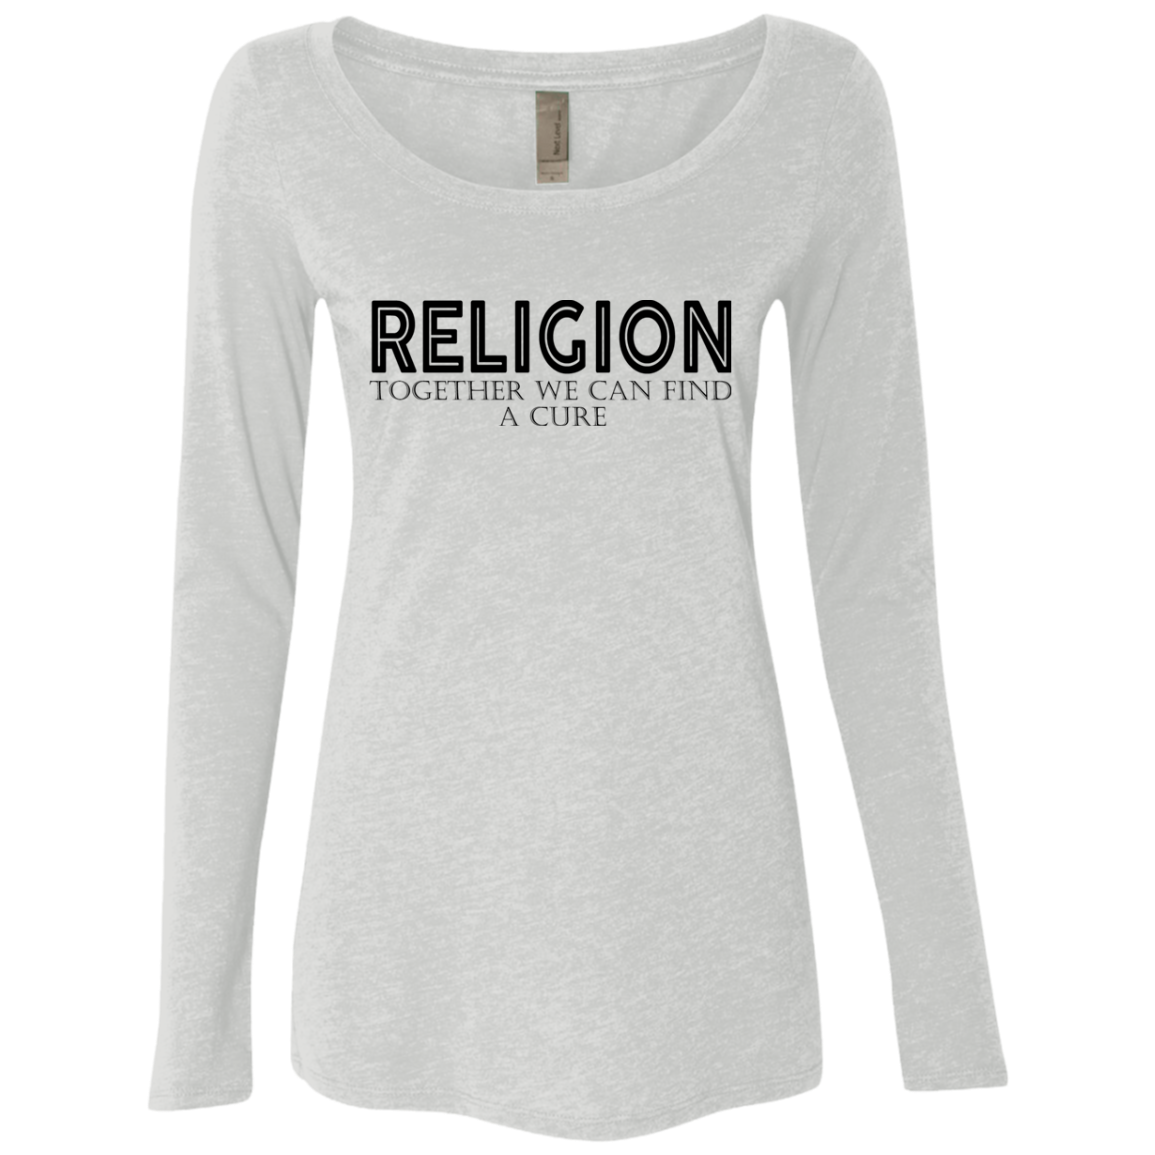 REligion Together We Can Find A Cure Women's Long Sleeve Tee